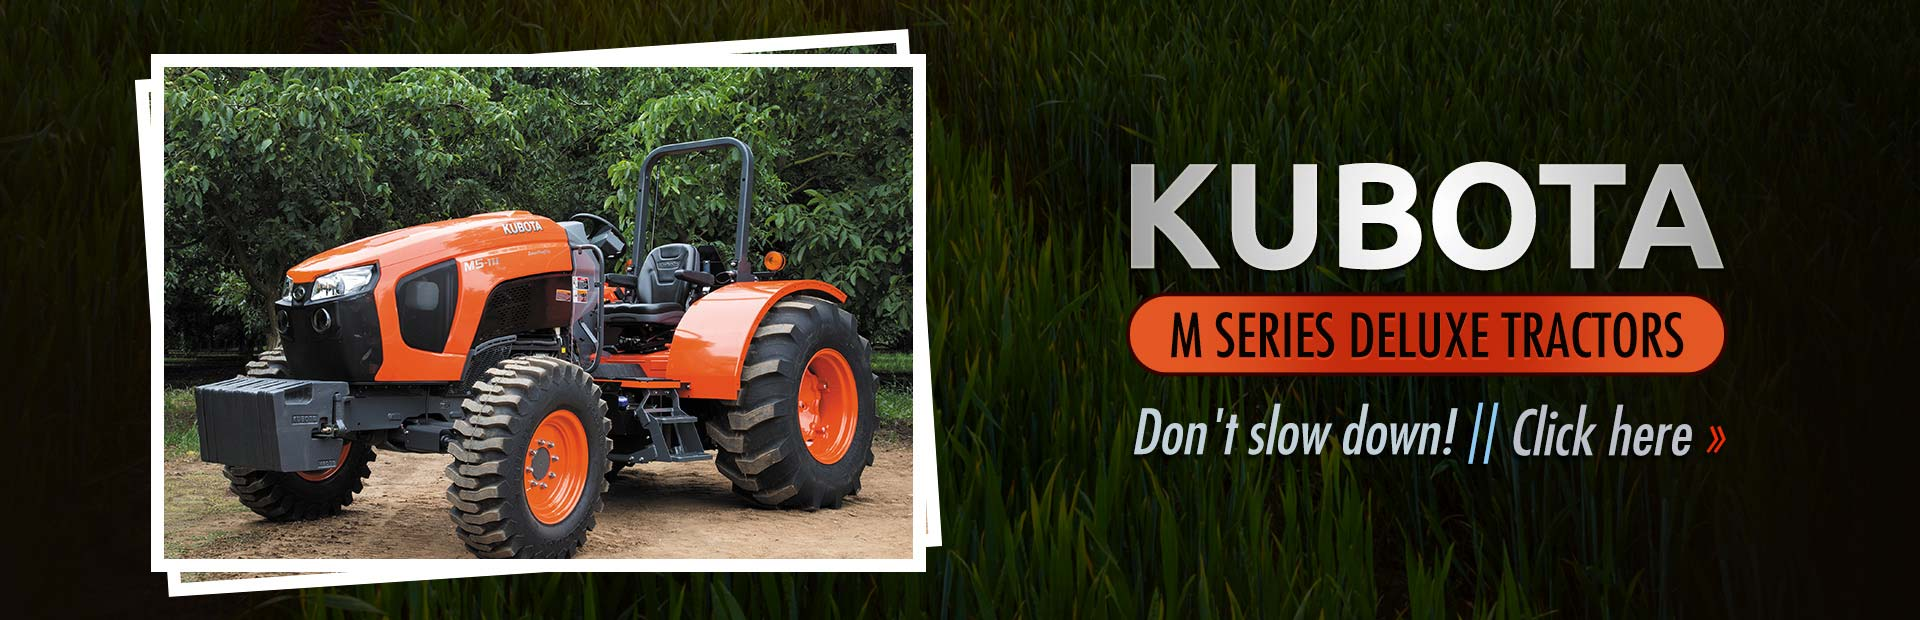 Kubota tractors for sale in kentucky - Click Here To View Our Selection Of Kubota M Series Deluxe Tractors